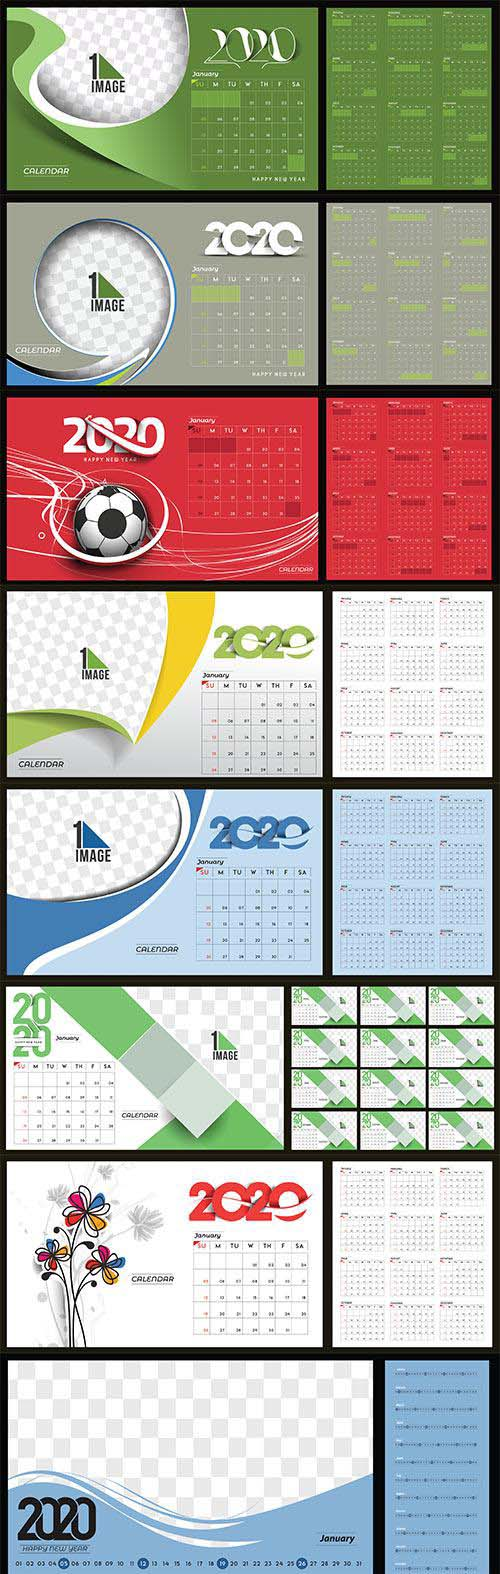 Happy new year 2020 Calendar vector illustration